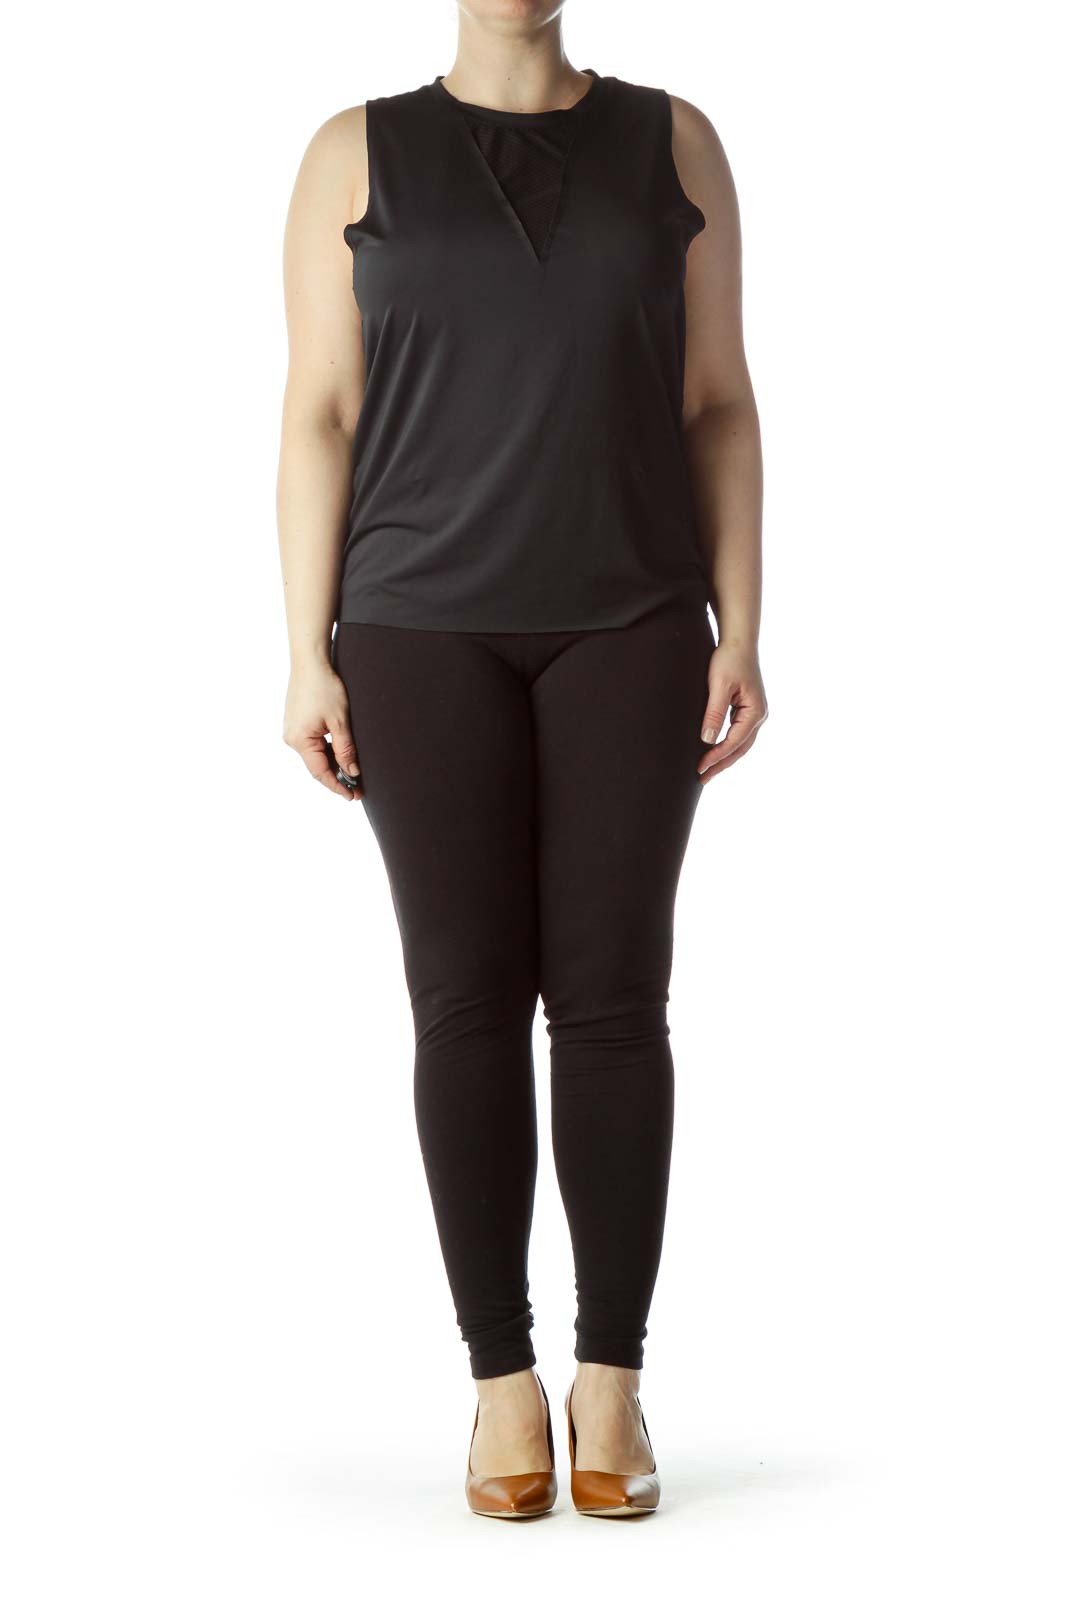 Black Round Neck Sleeveless Yoga Top